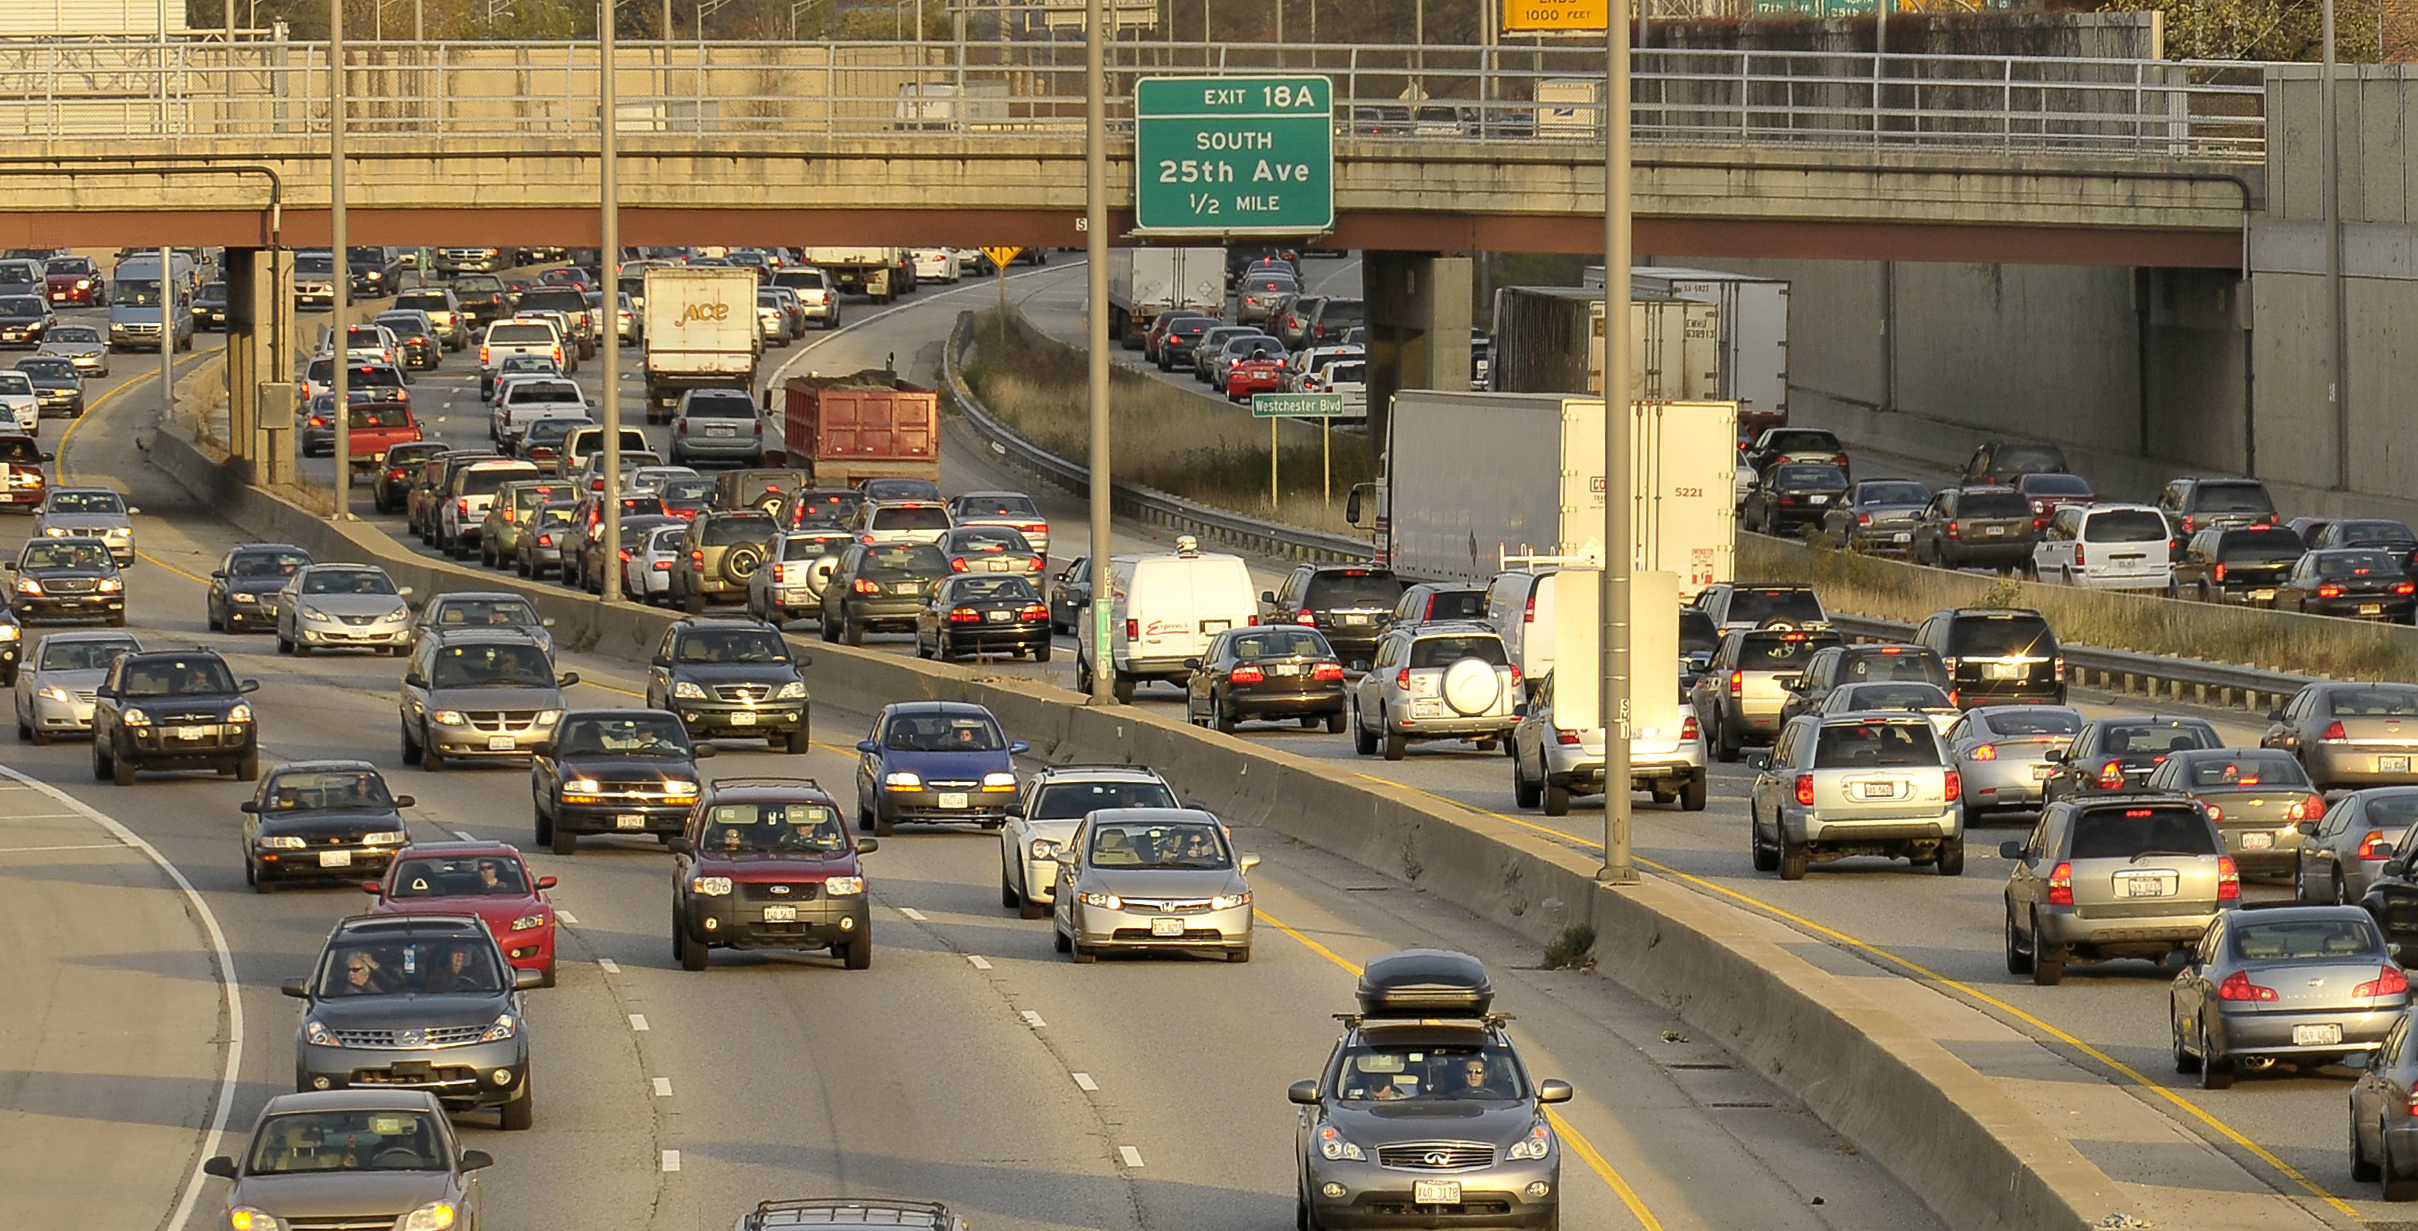 The INRIX Global Traffic Scorecard annual report also lists the Eisenhower Expressway — particularly from I-290/294 to I-90/94 Interchange — as the most congested road in the country.